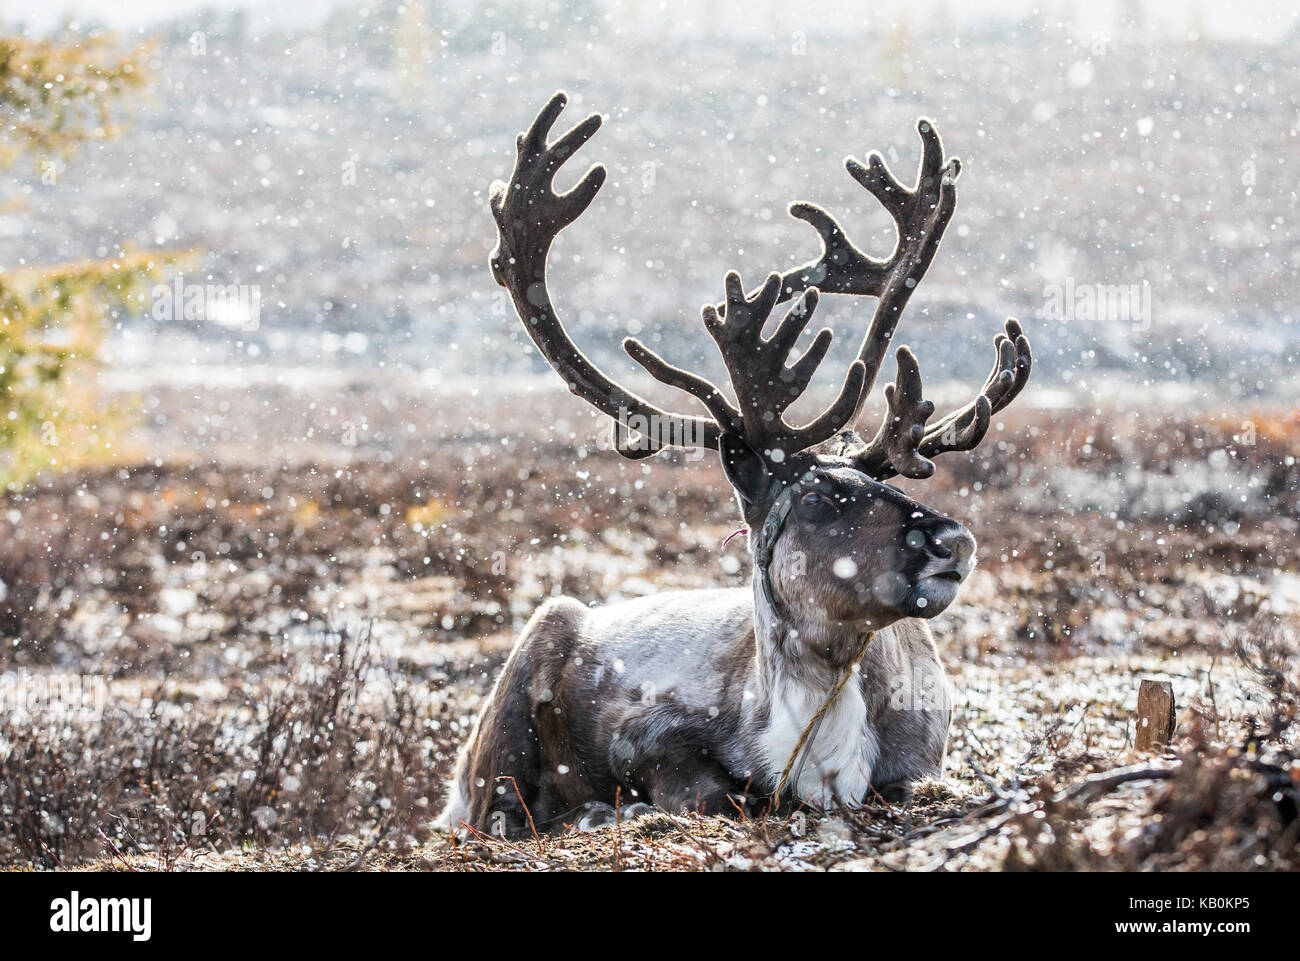 rein deer in a snow in northern Mongolia - Stock Image